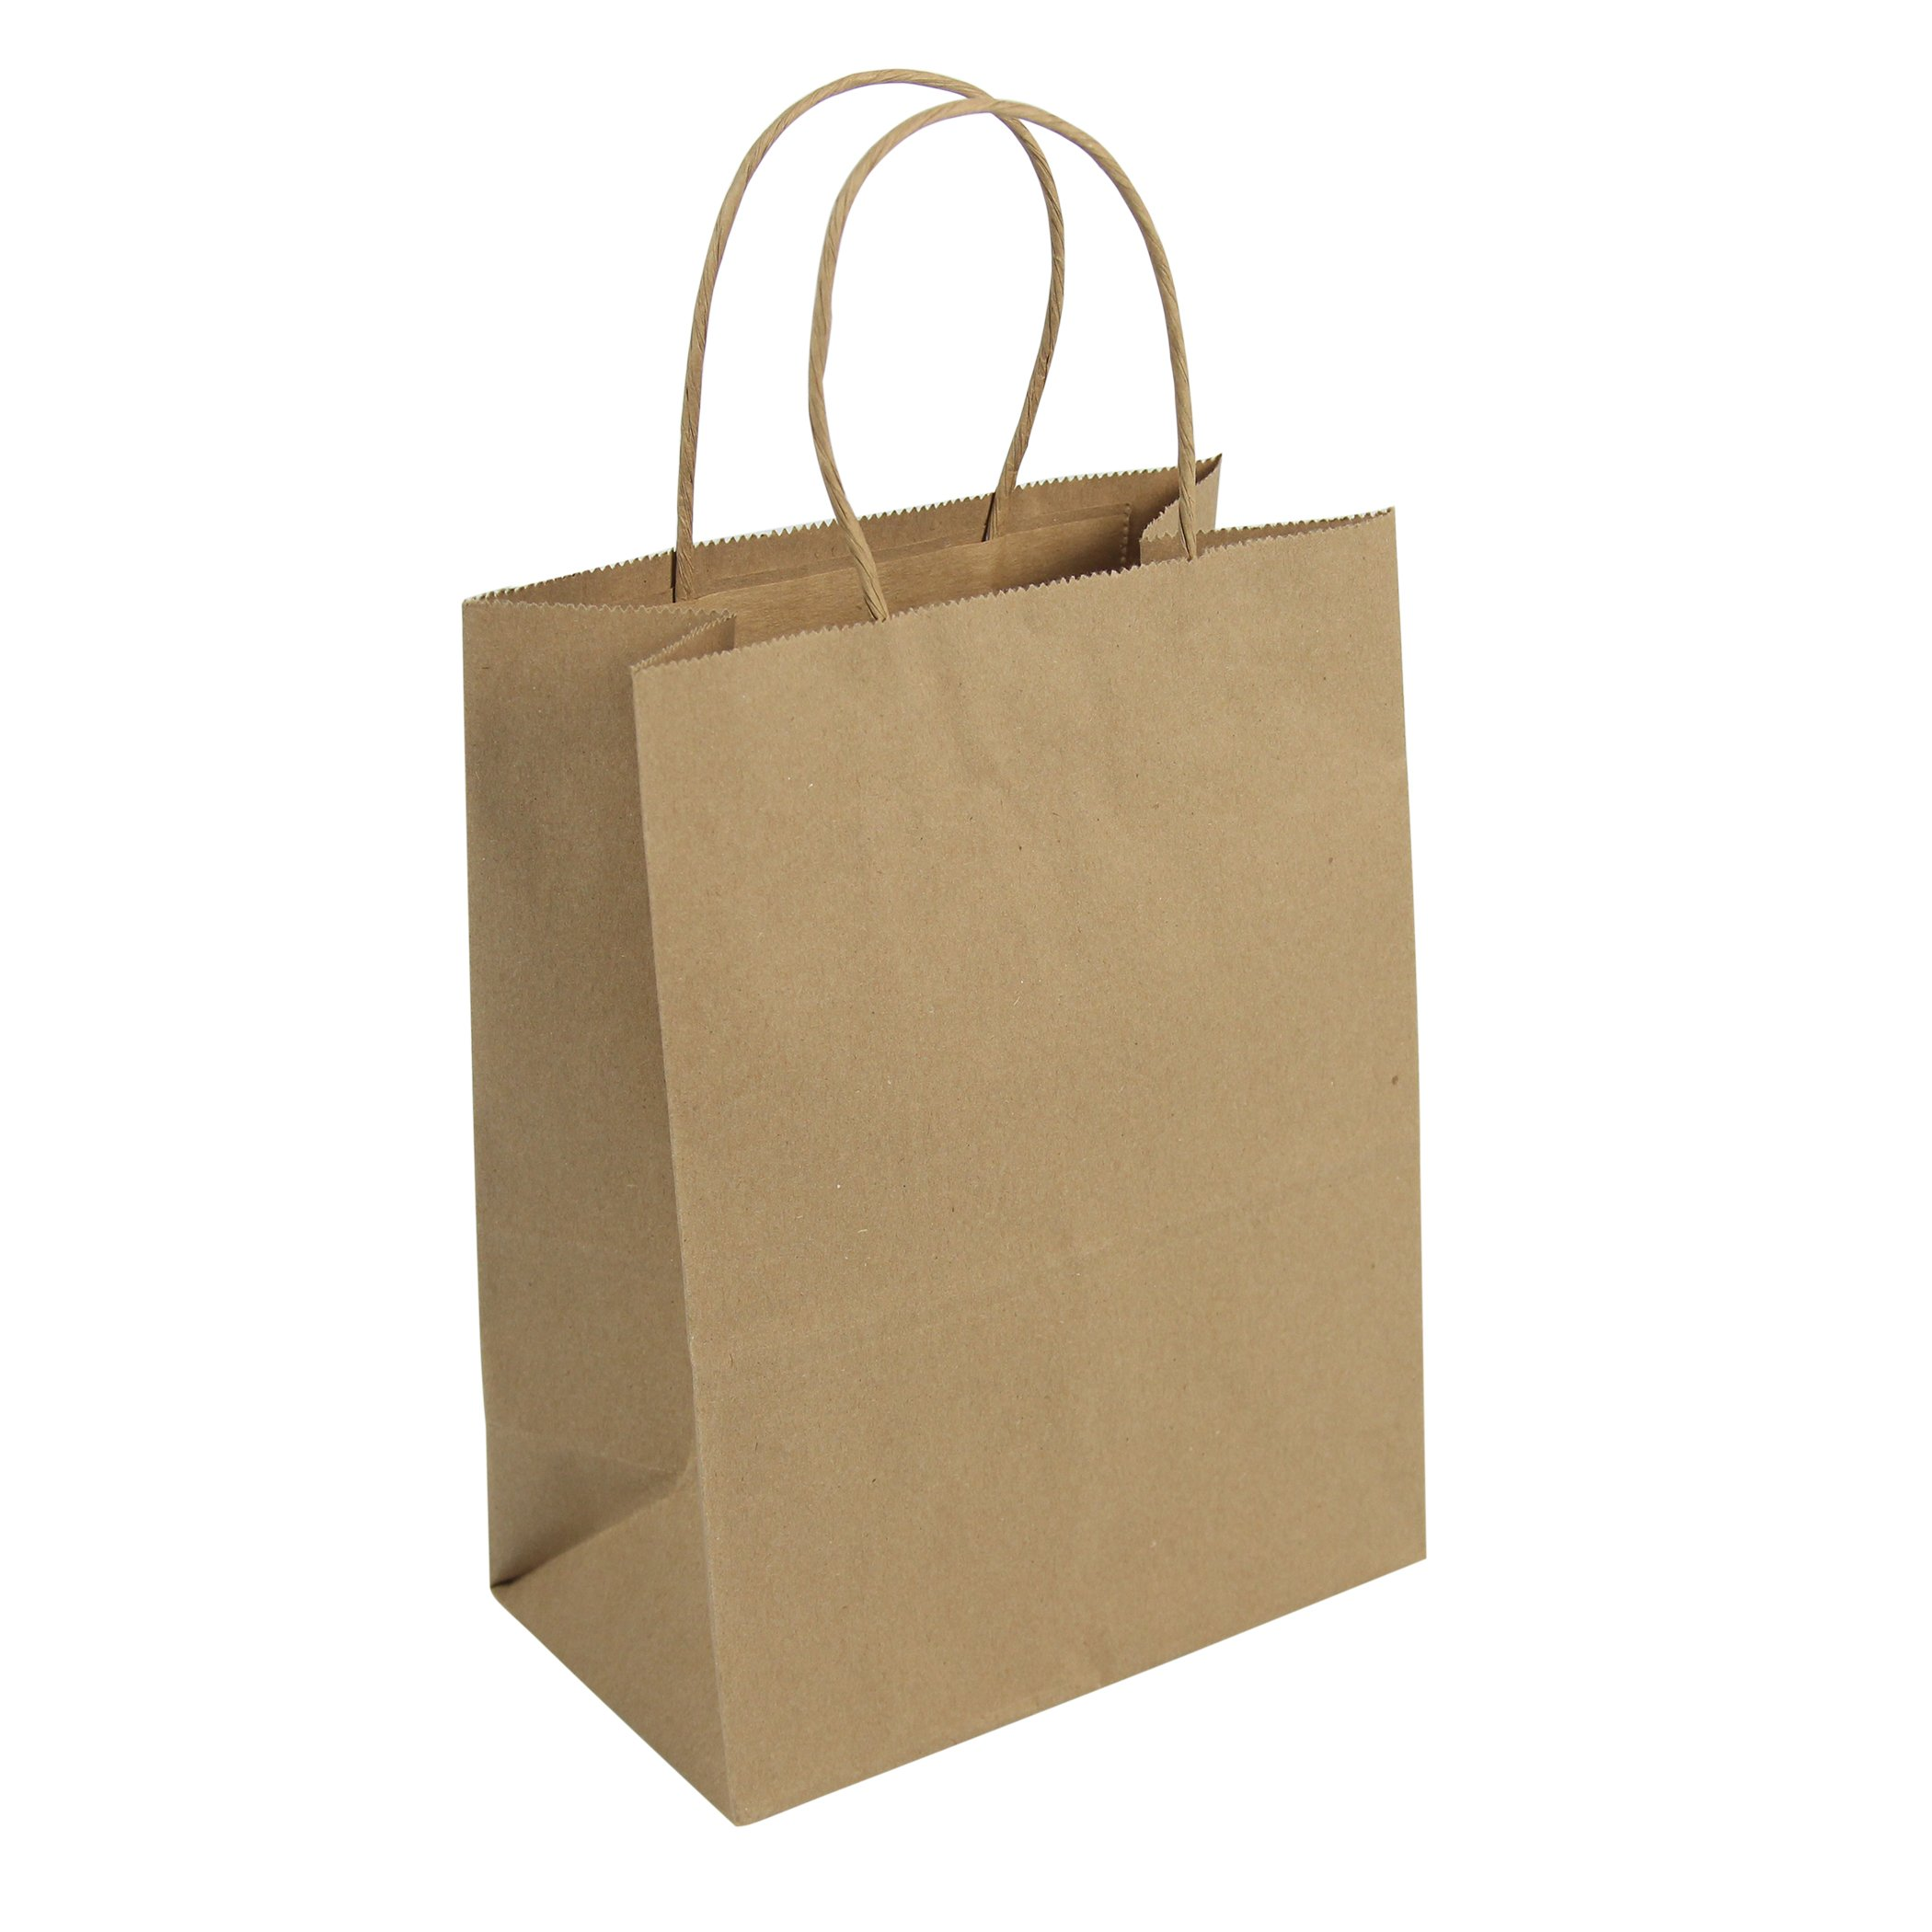 Duro ID# 87097 Tempo Shopping Bag 60# 100% Recycled Natural Kraft 250pk 8 x 4.5 x 10.25 by Duro